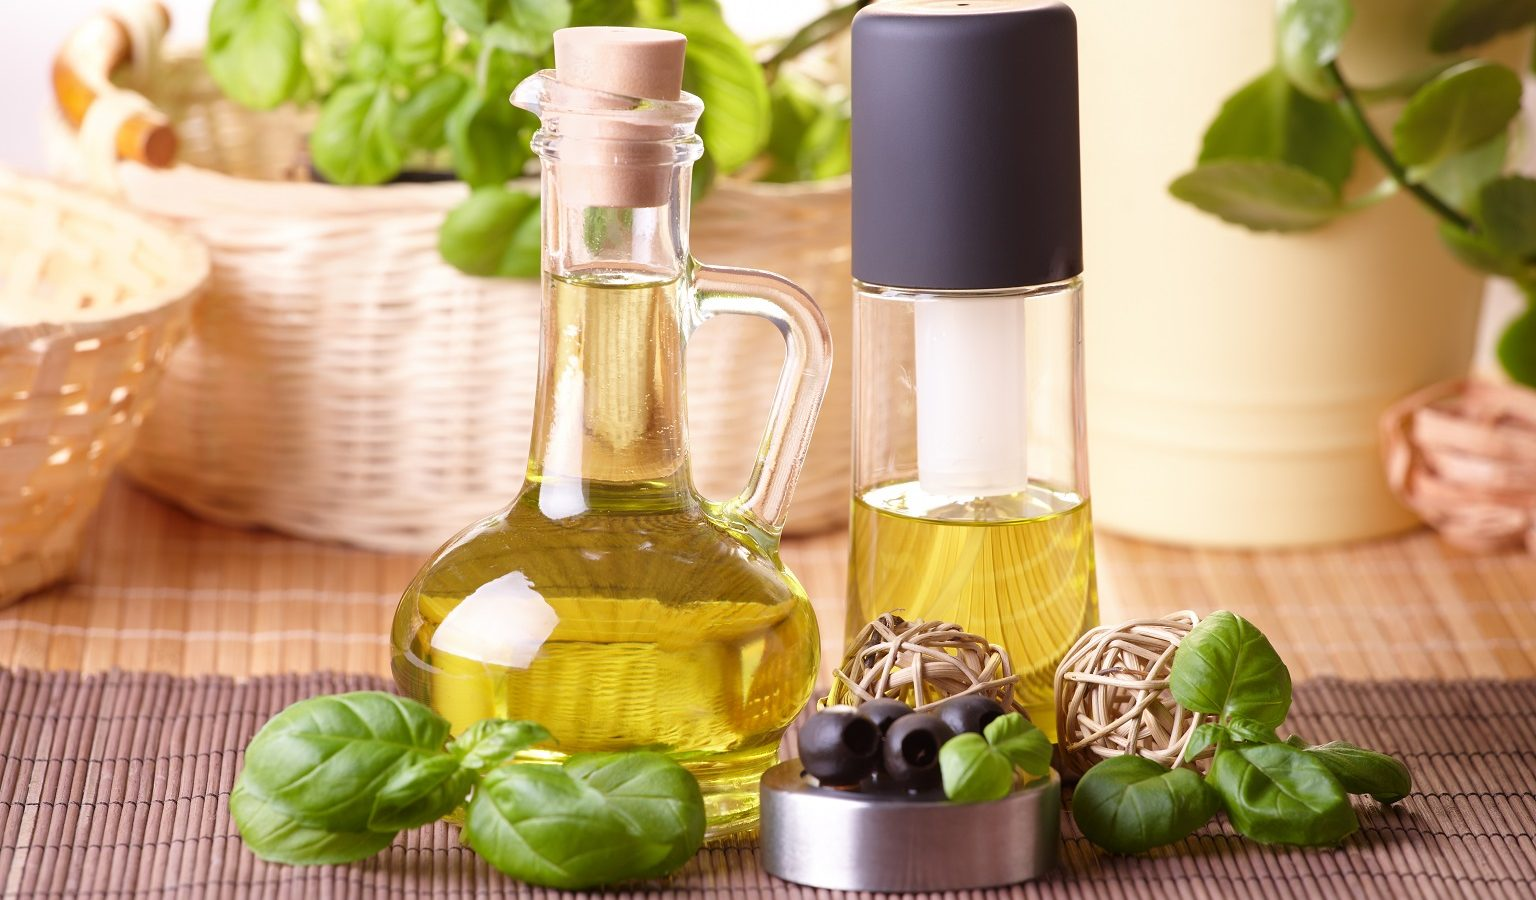 Best Olive Oil Sprayer